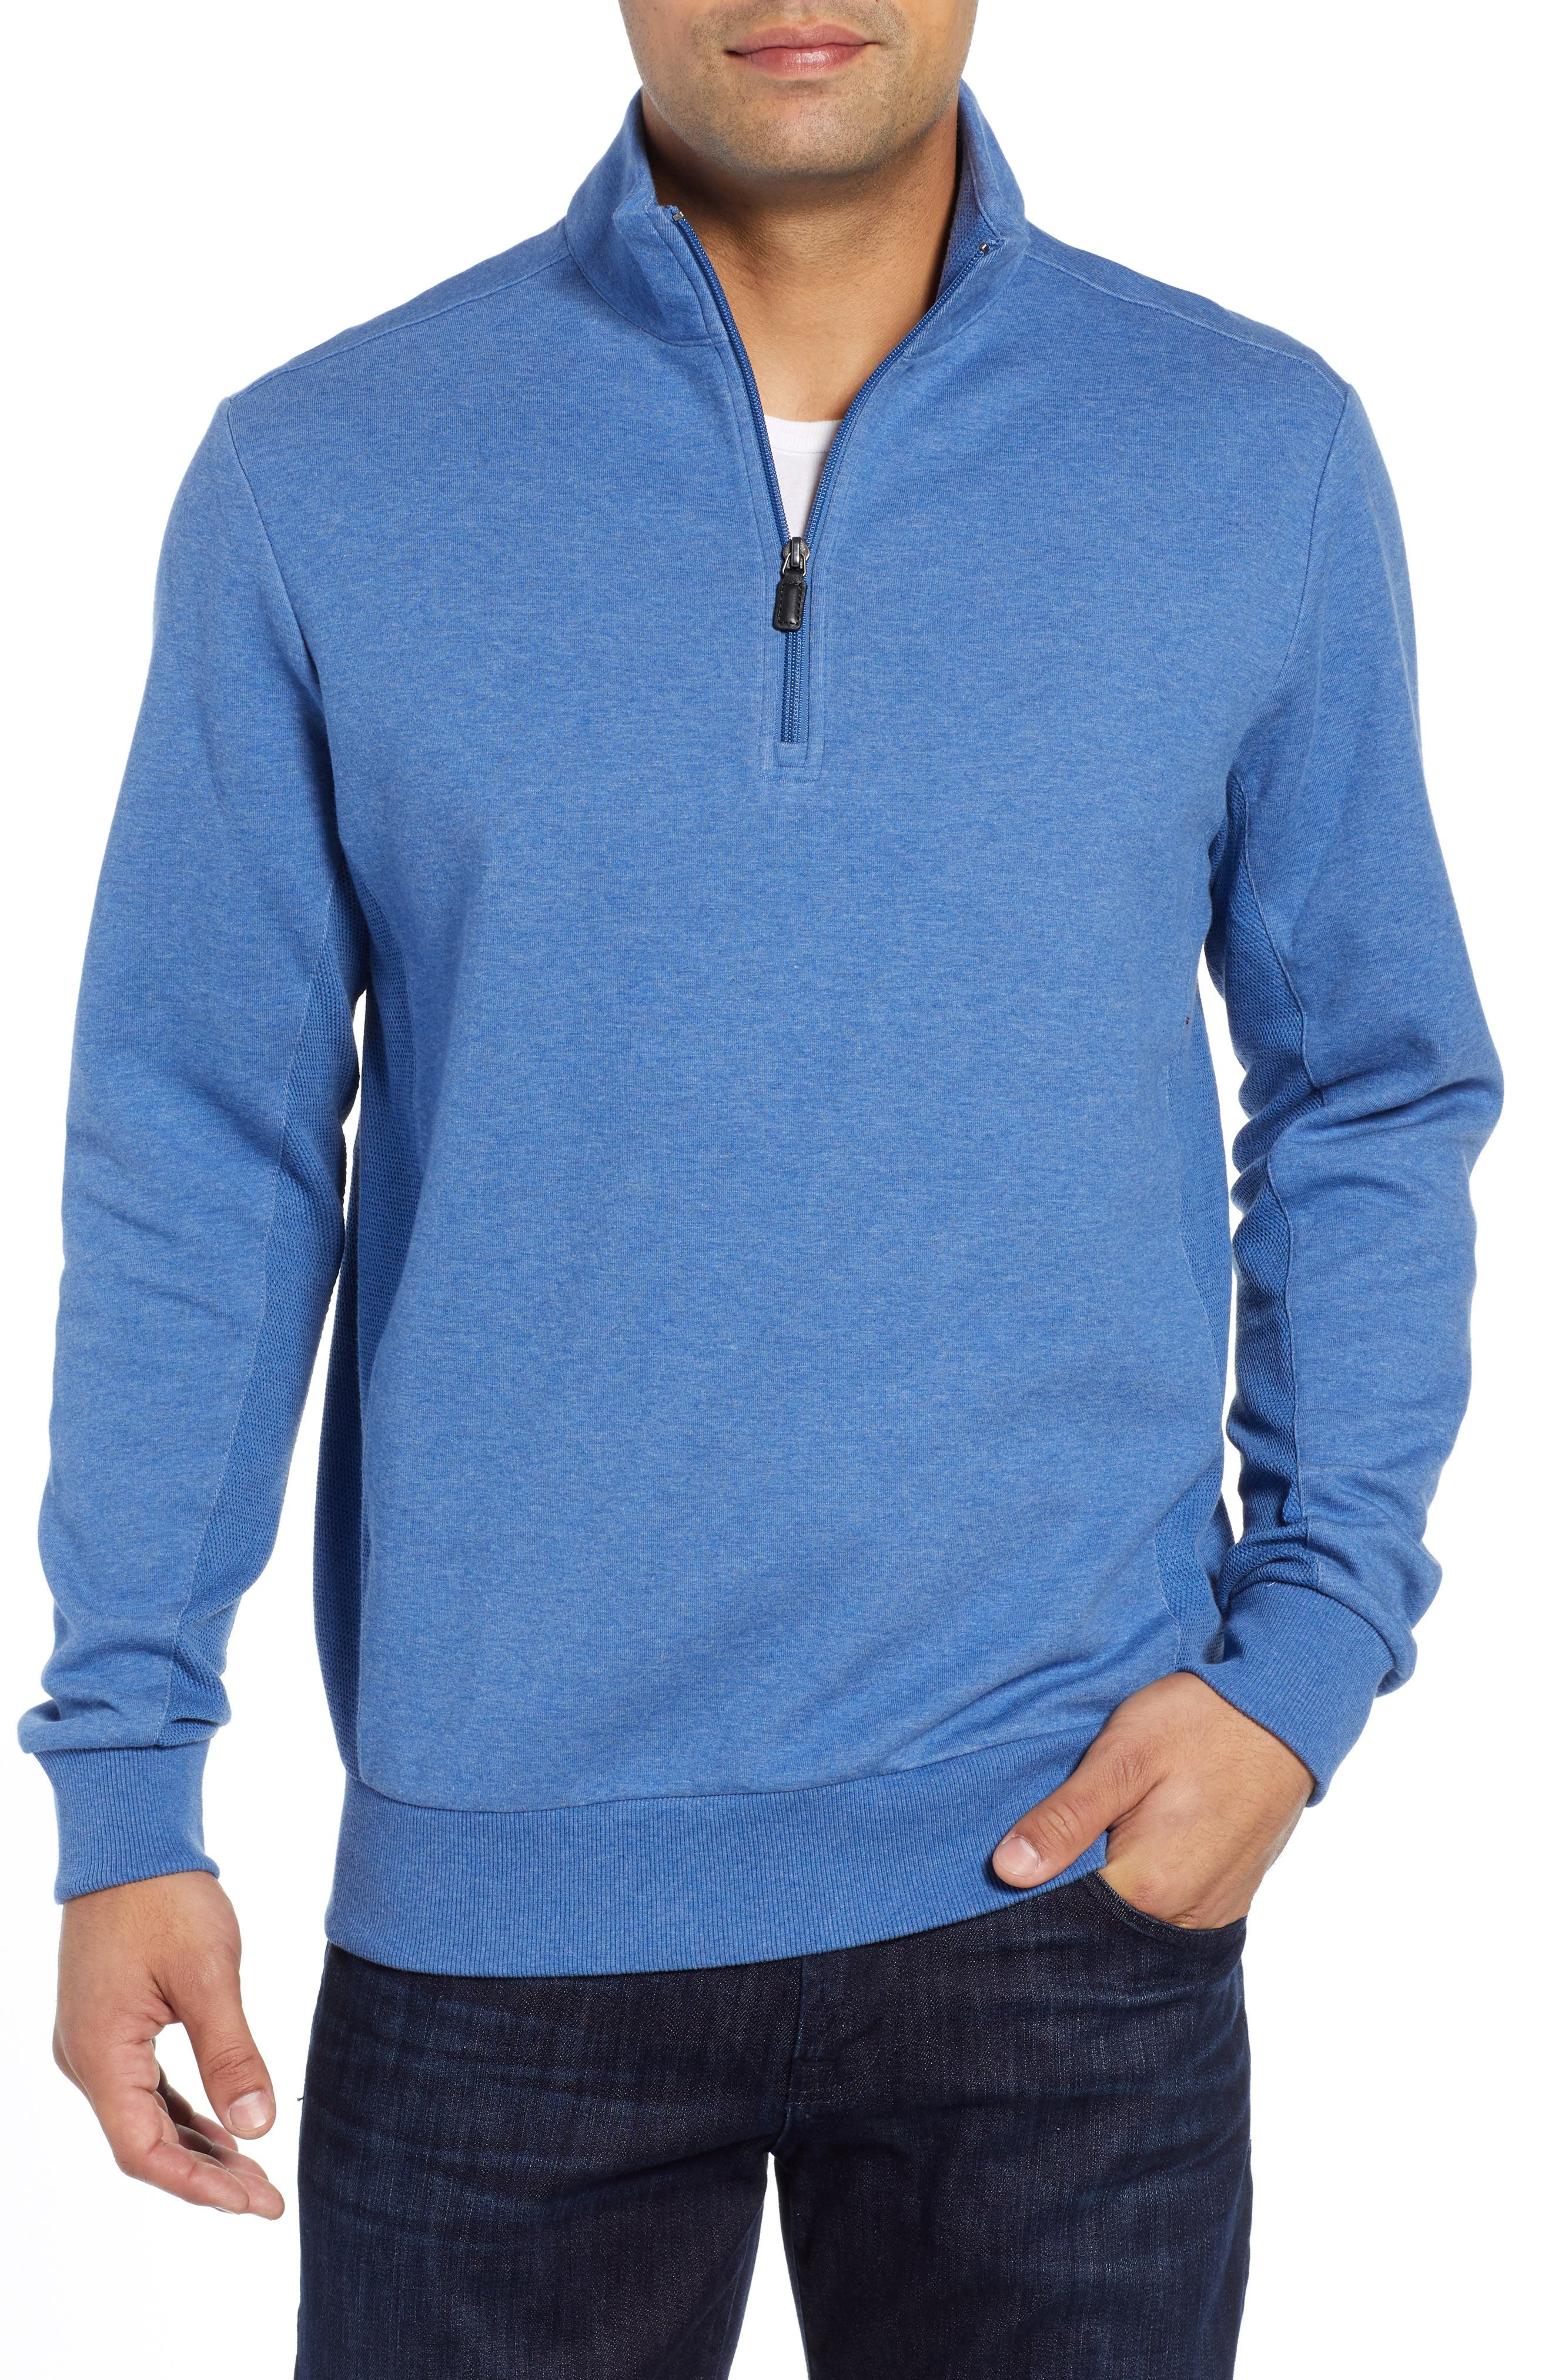 Quarter Zip Knit Sweater,                         Main,                         color, NIGHT BLUE